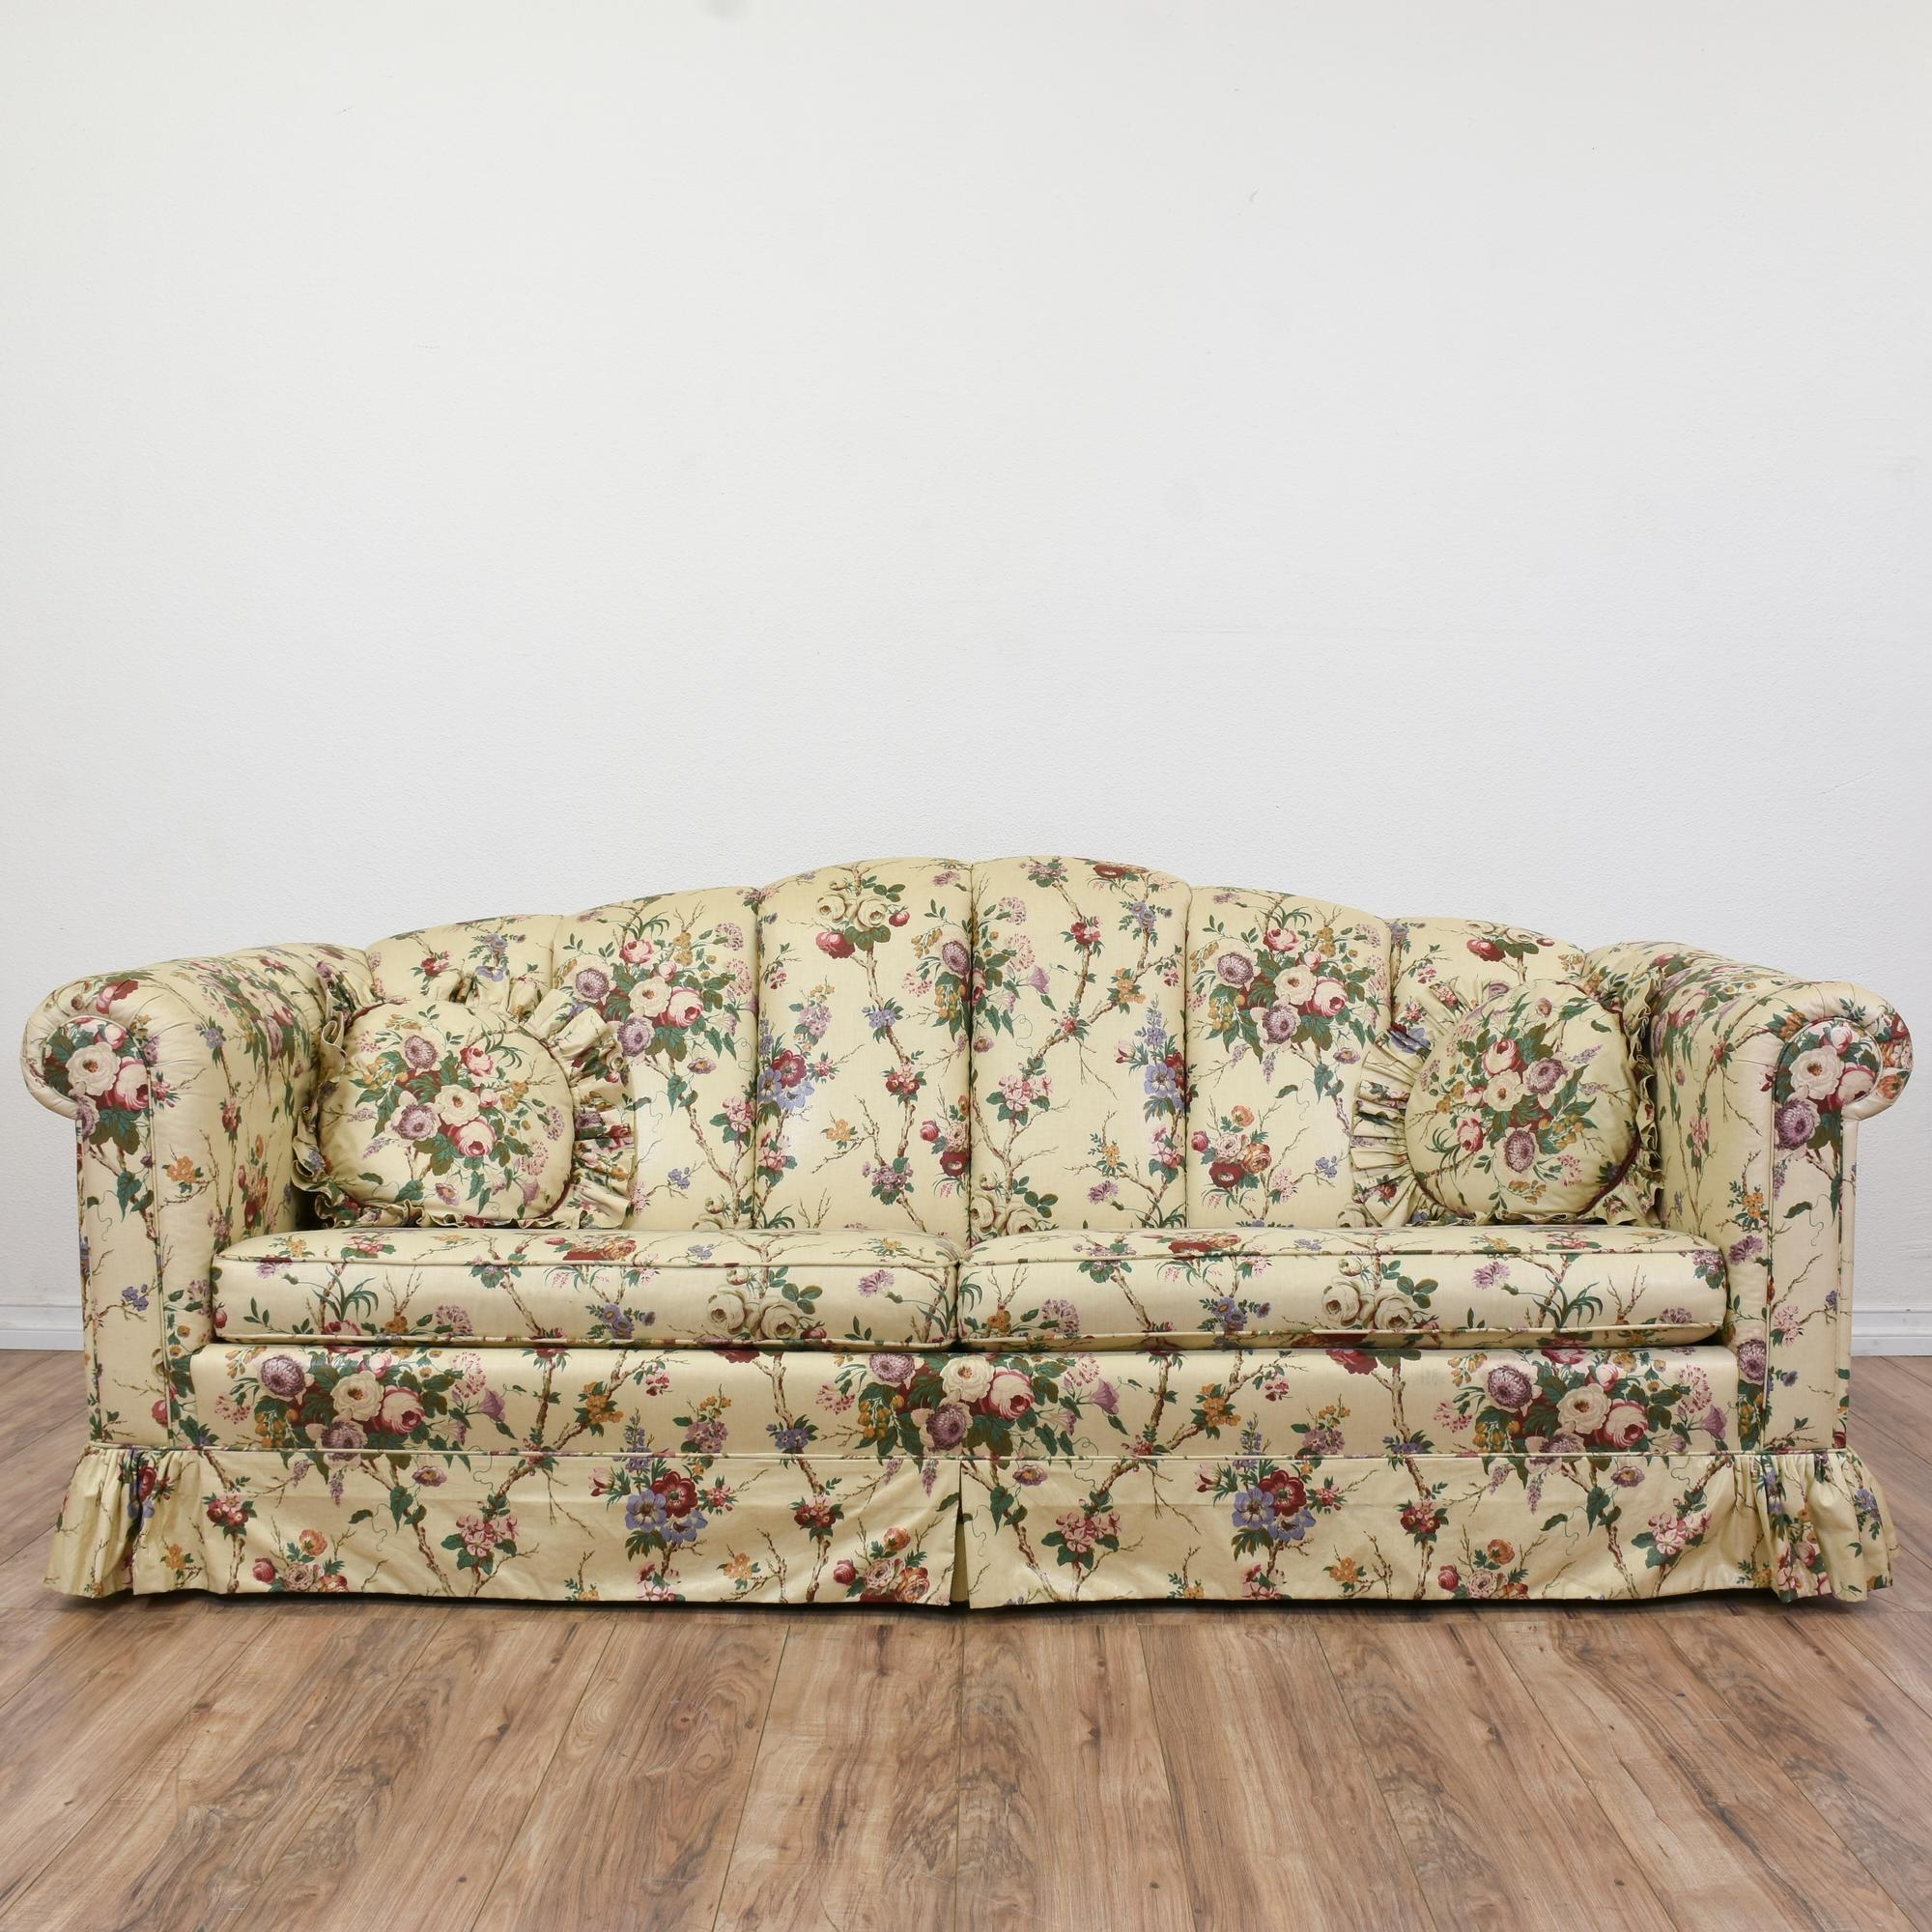 Floral Liberty Chintz Print Sofa Long Sofa Country Sofas And For Chintz Fabric Sofas (Image 7 of 15)